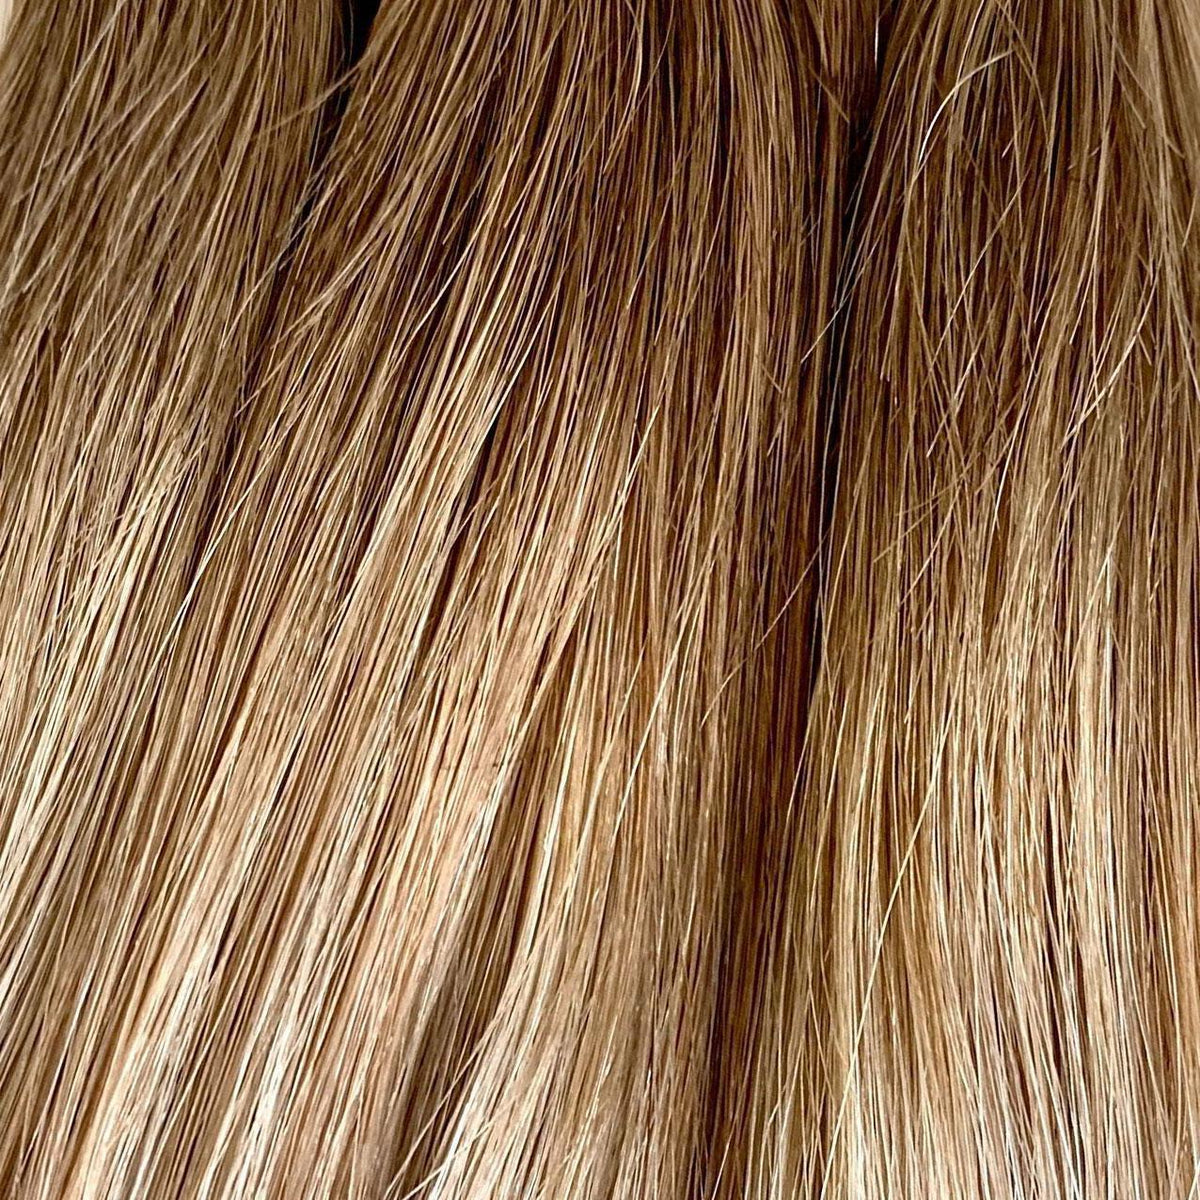 Machine_Sewn_Halfsies - Halfsies Machine Sewn Weft Extensions Rooted #6/D8/60